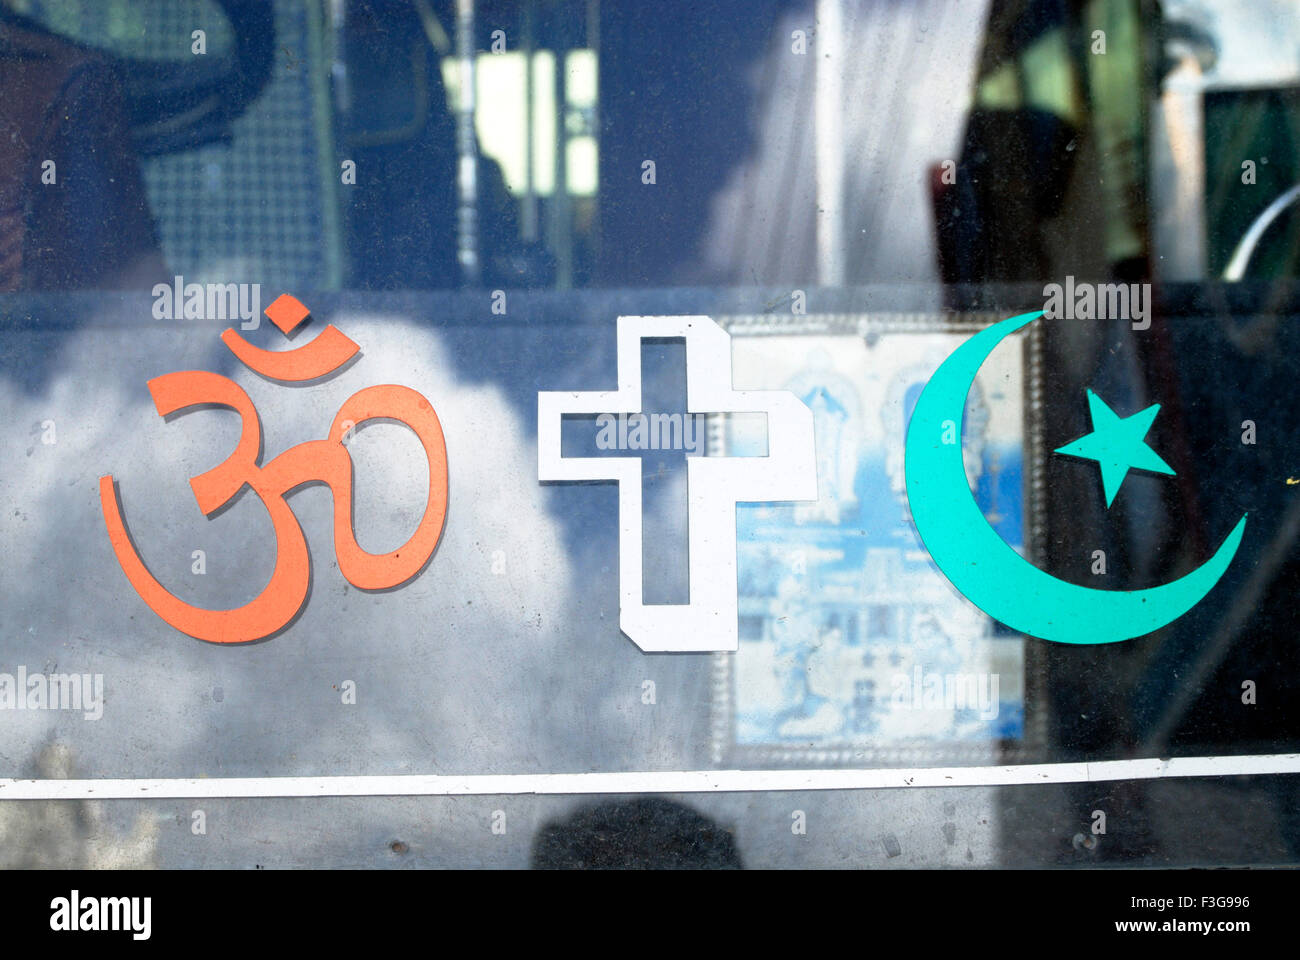 Muslim Christian Unity Stock Photos Muslim Christian Unity Stock